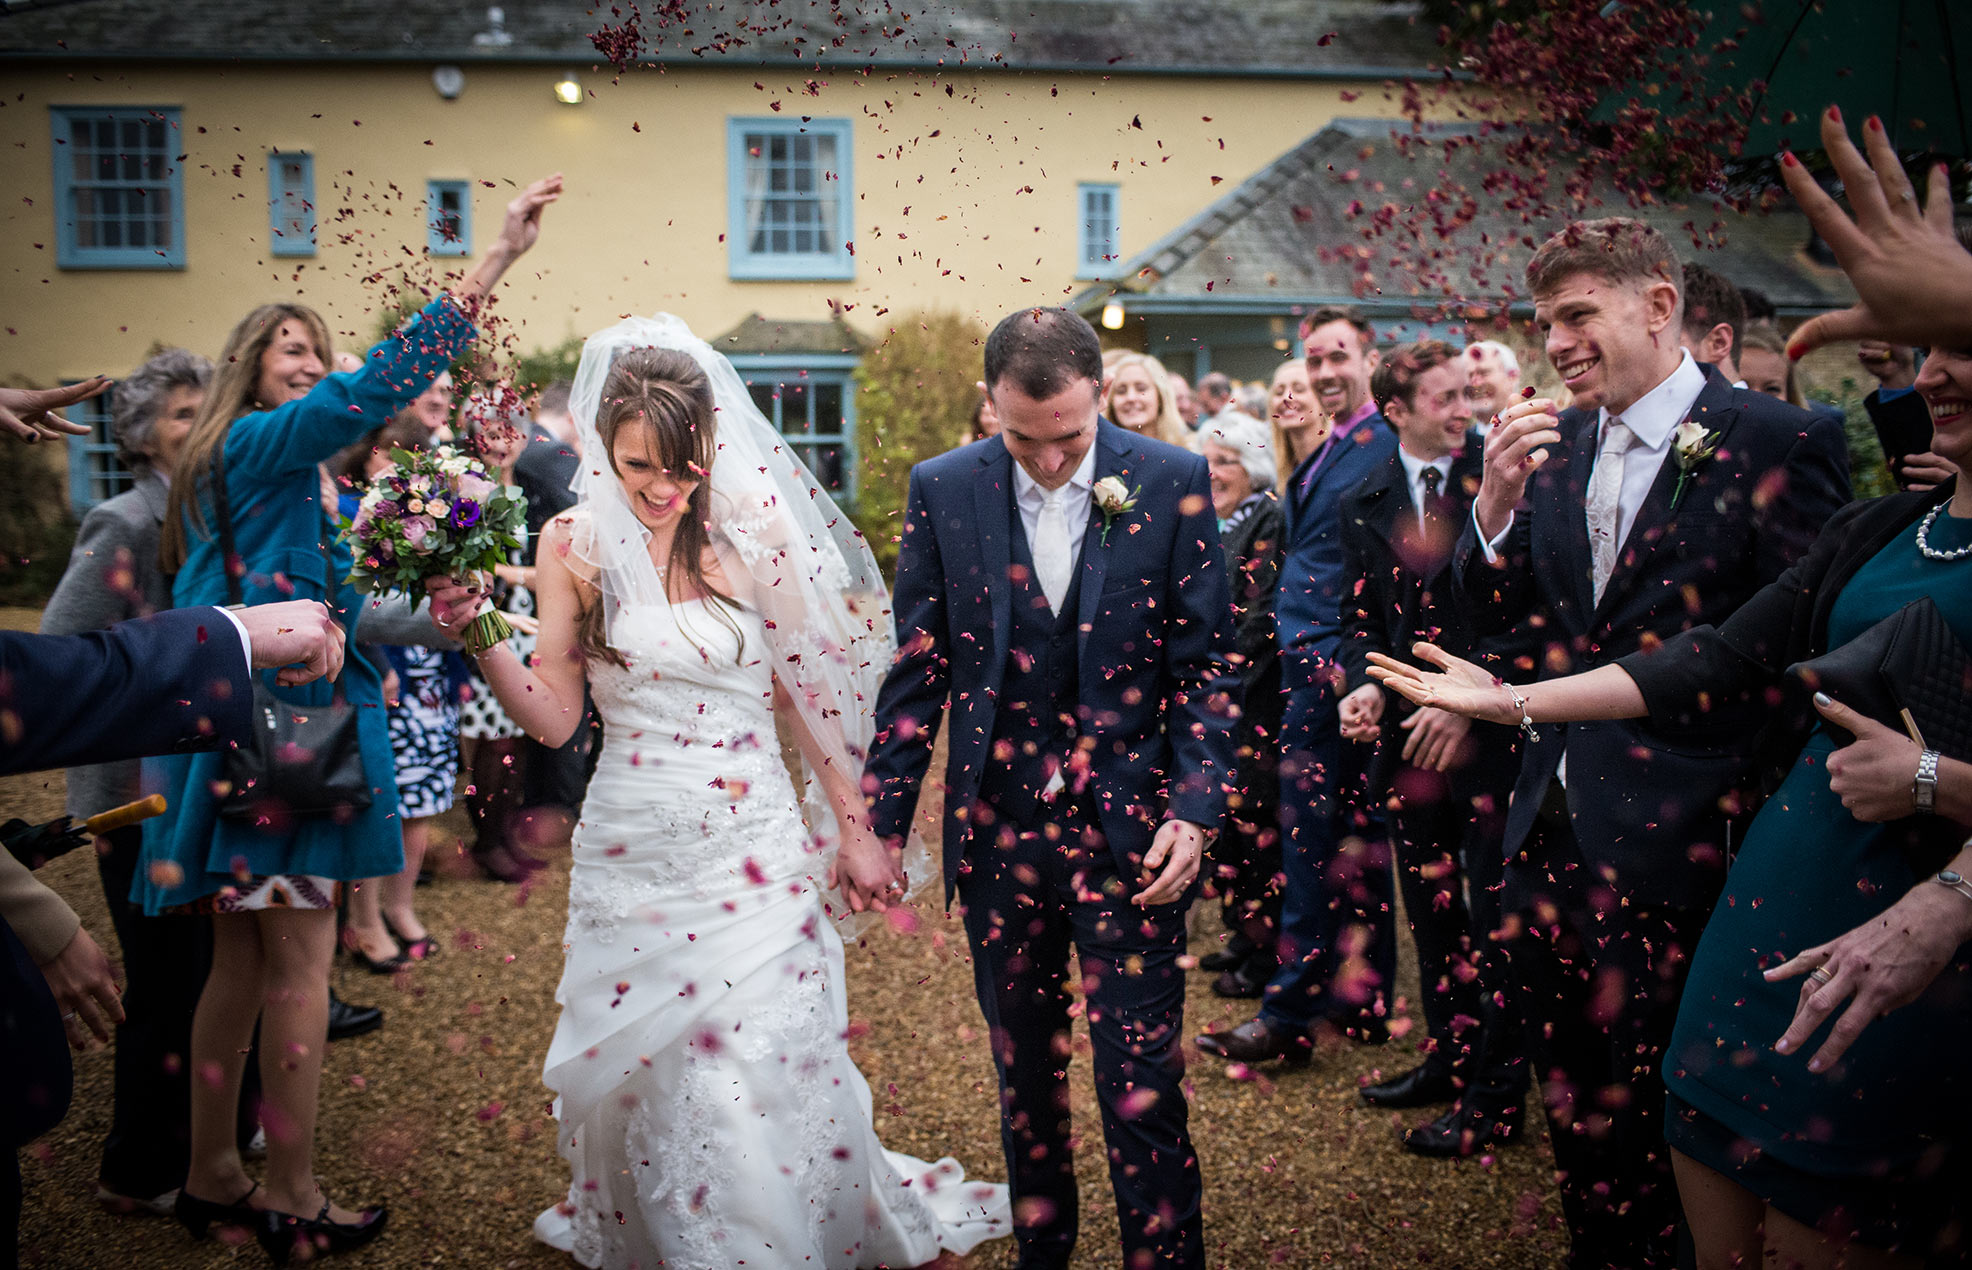 Wedding confetti at South Farm near Royston